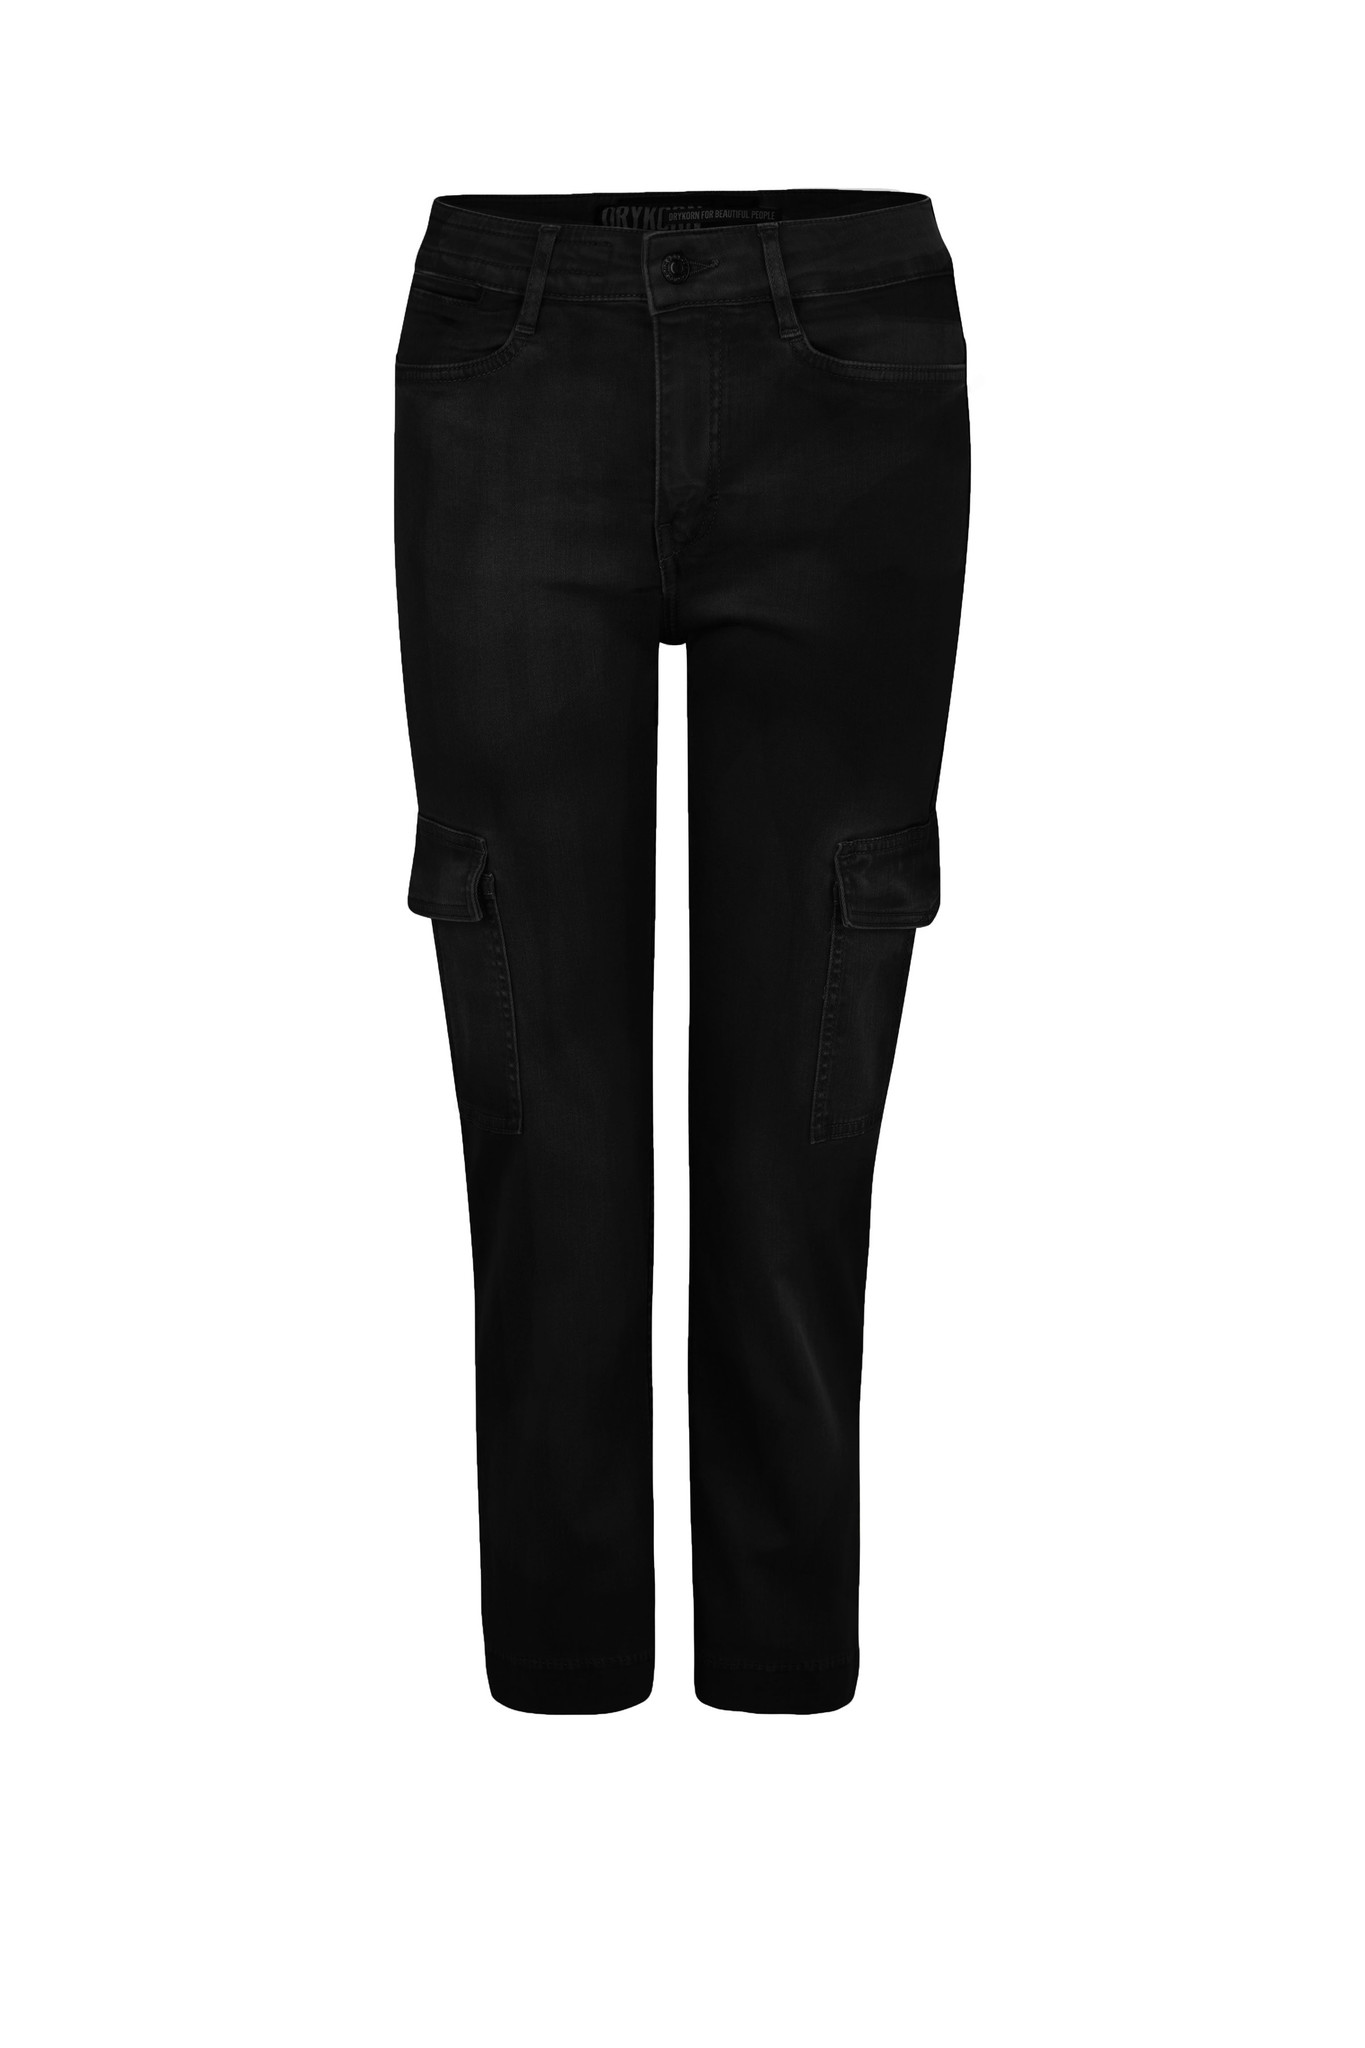 drykorn pants OUTBOUND 270035-1